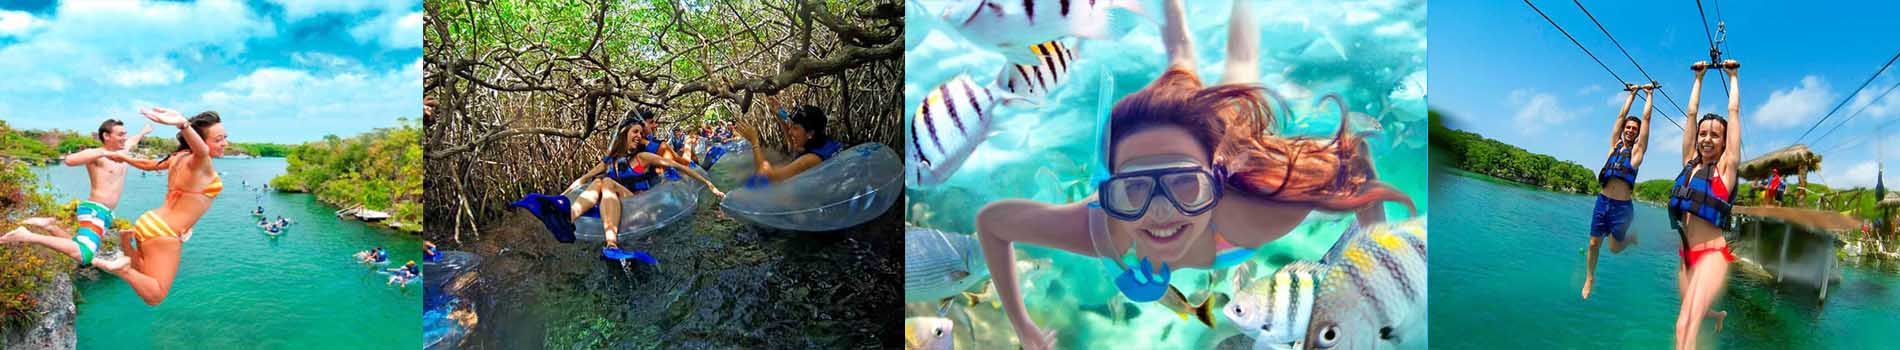 tour a xel ha desde cancun